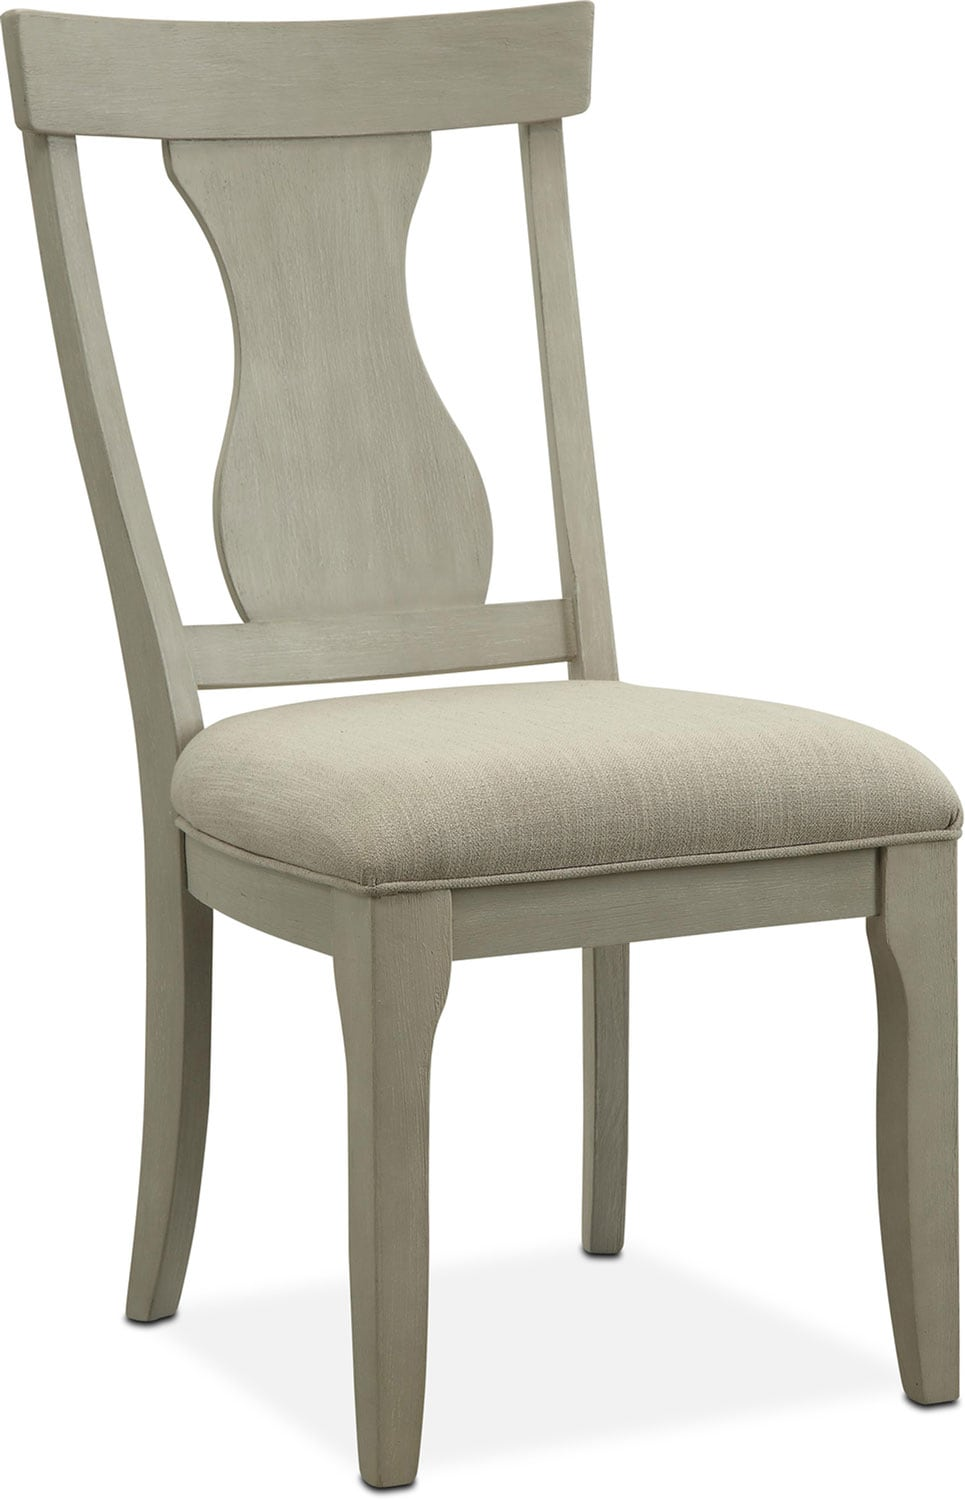 Beau Dining Room Furniture   Lancaster Splat Back Chair   Water White